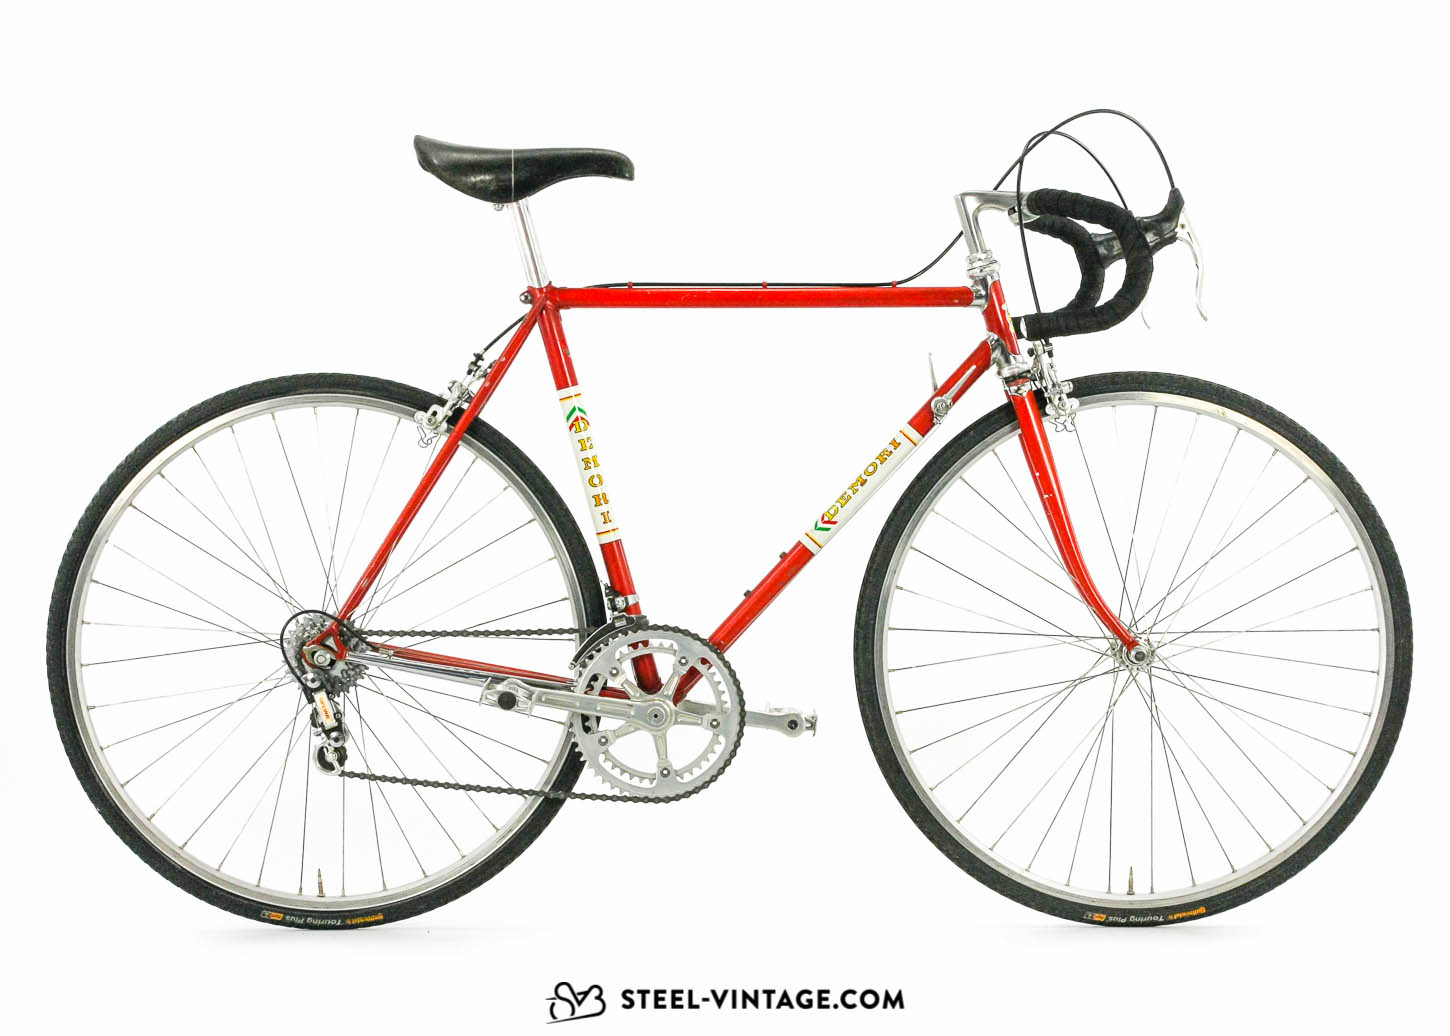 Demori 1970s Classic Bicycle for Eroica